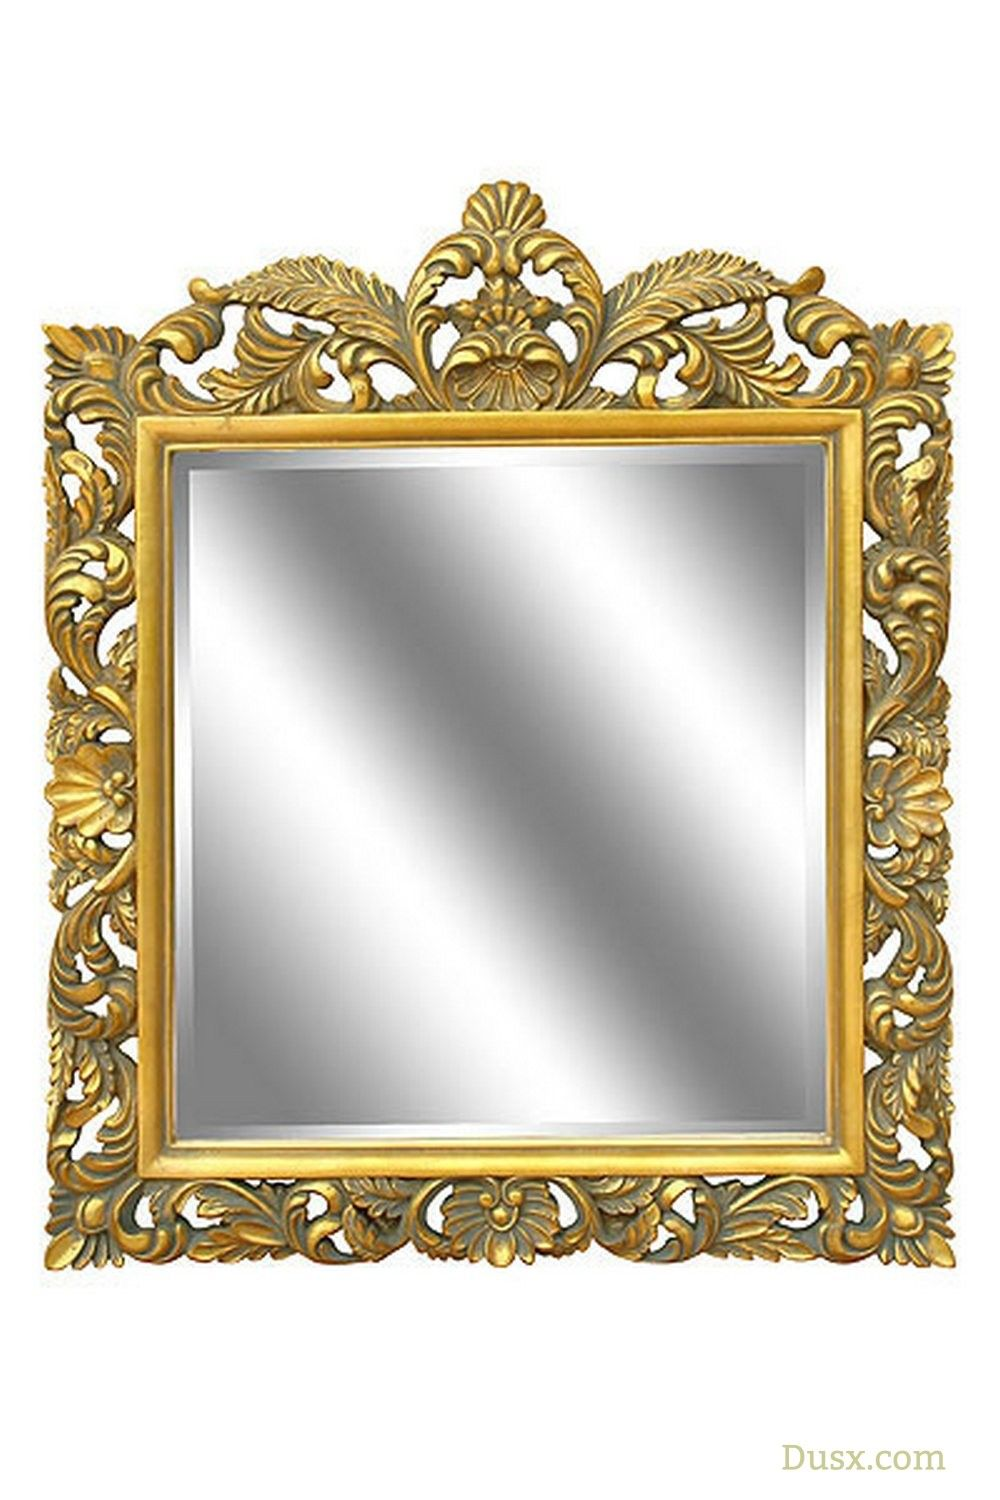 This Fabulous Square Mirror From Our Baroque Collection Featured Deeply Bevelled Glass An Antiqued Gold Handpai Baroque Frames Square Mirror Mirror Wall Decor